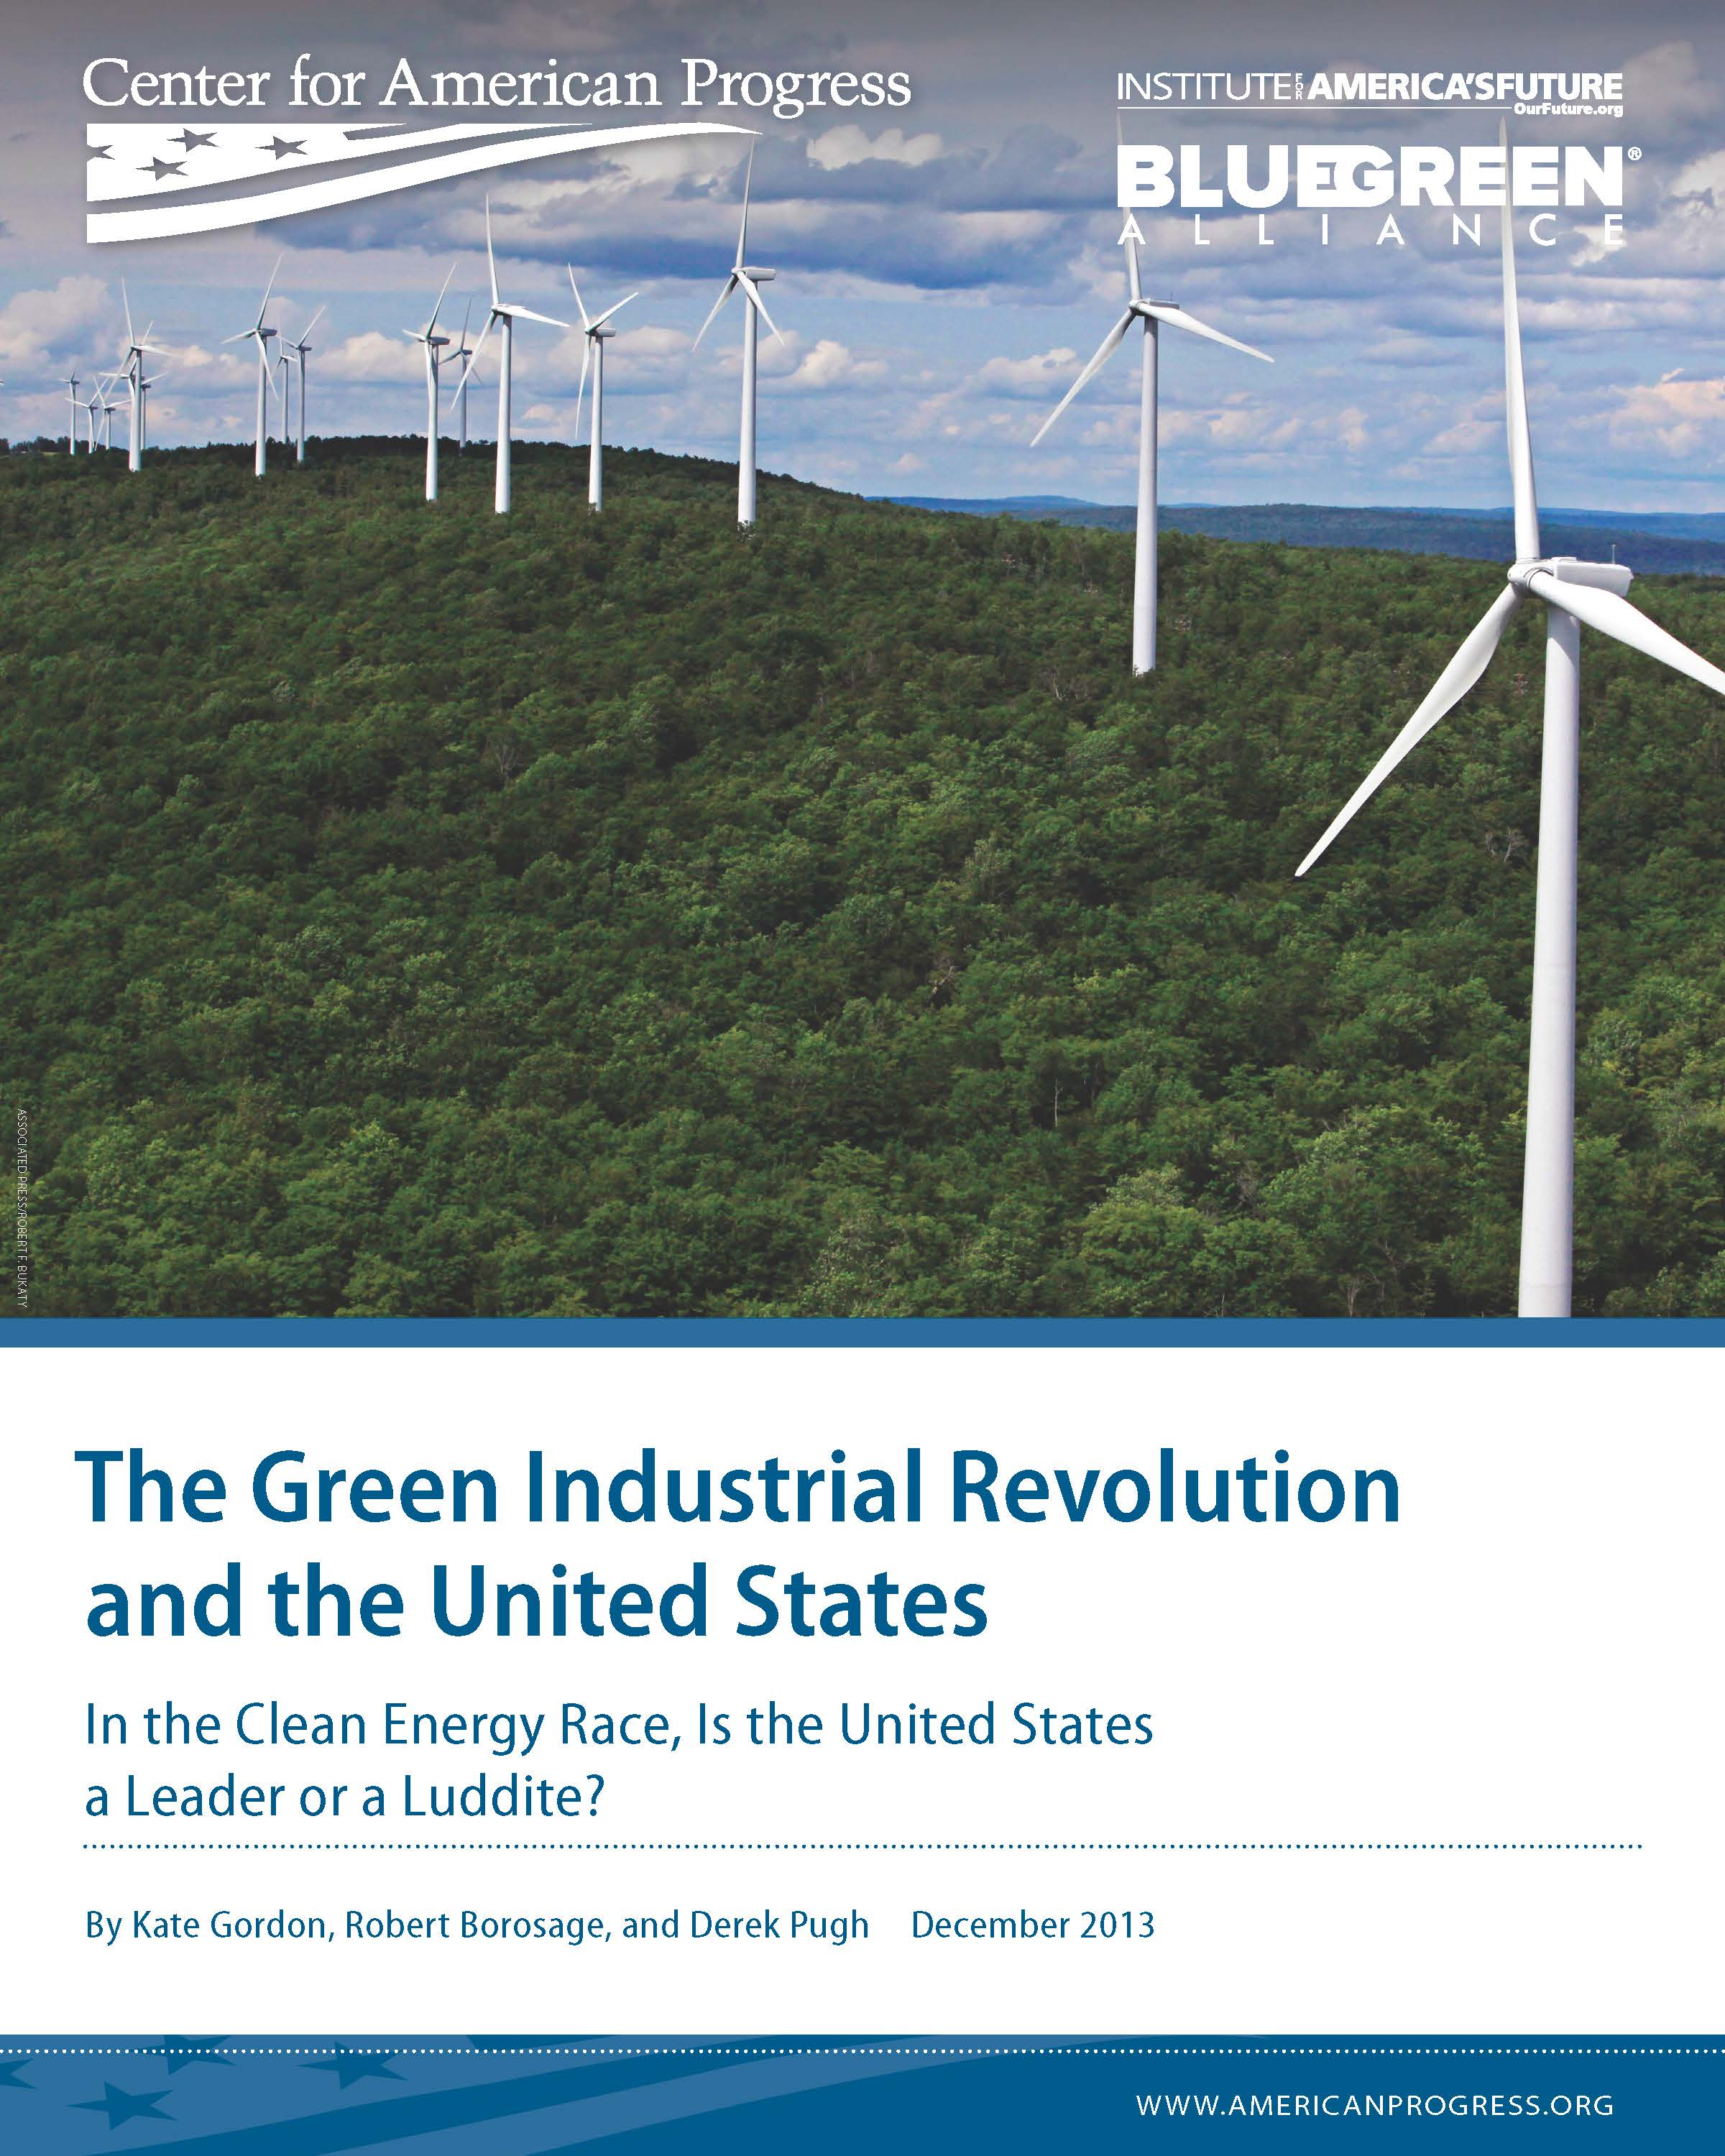 The dawning of the industrial revolution in the united states